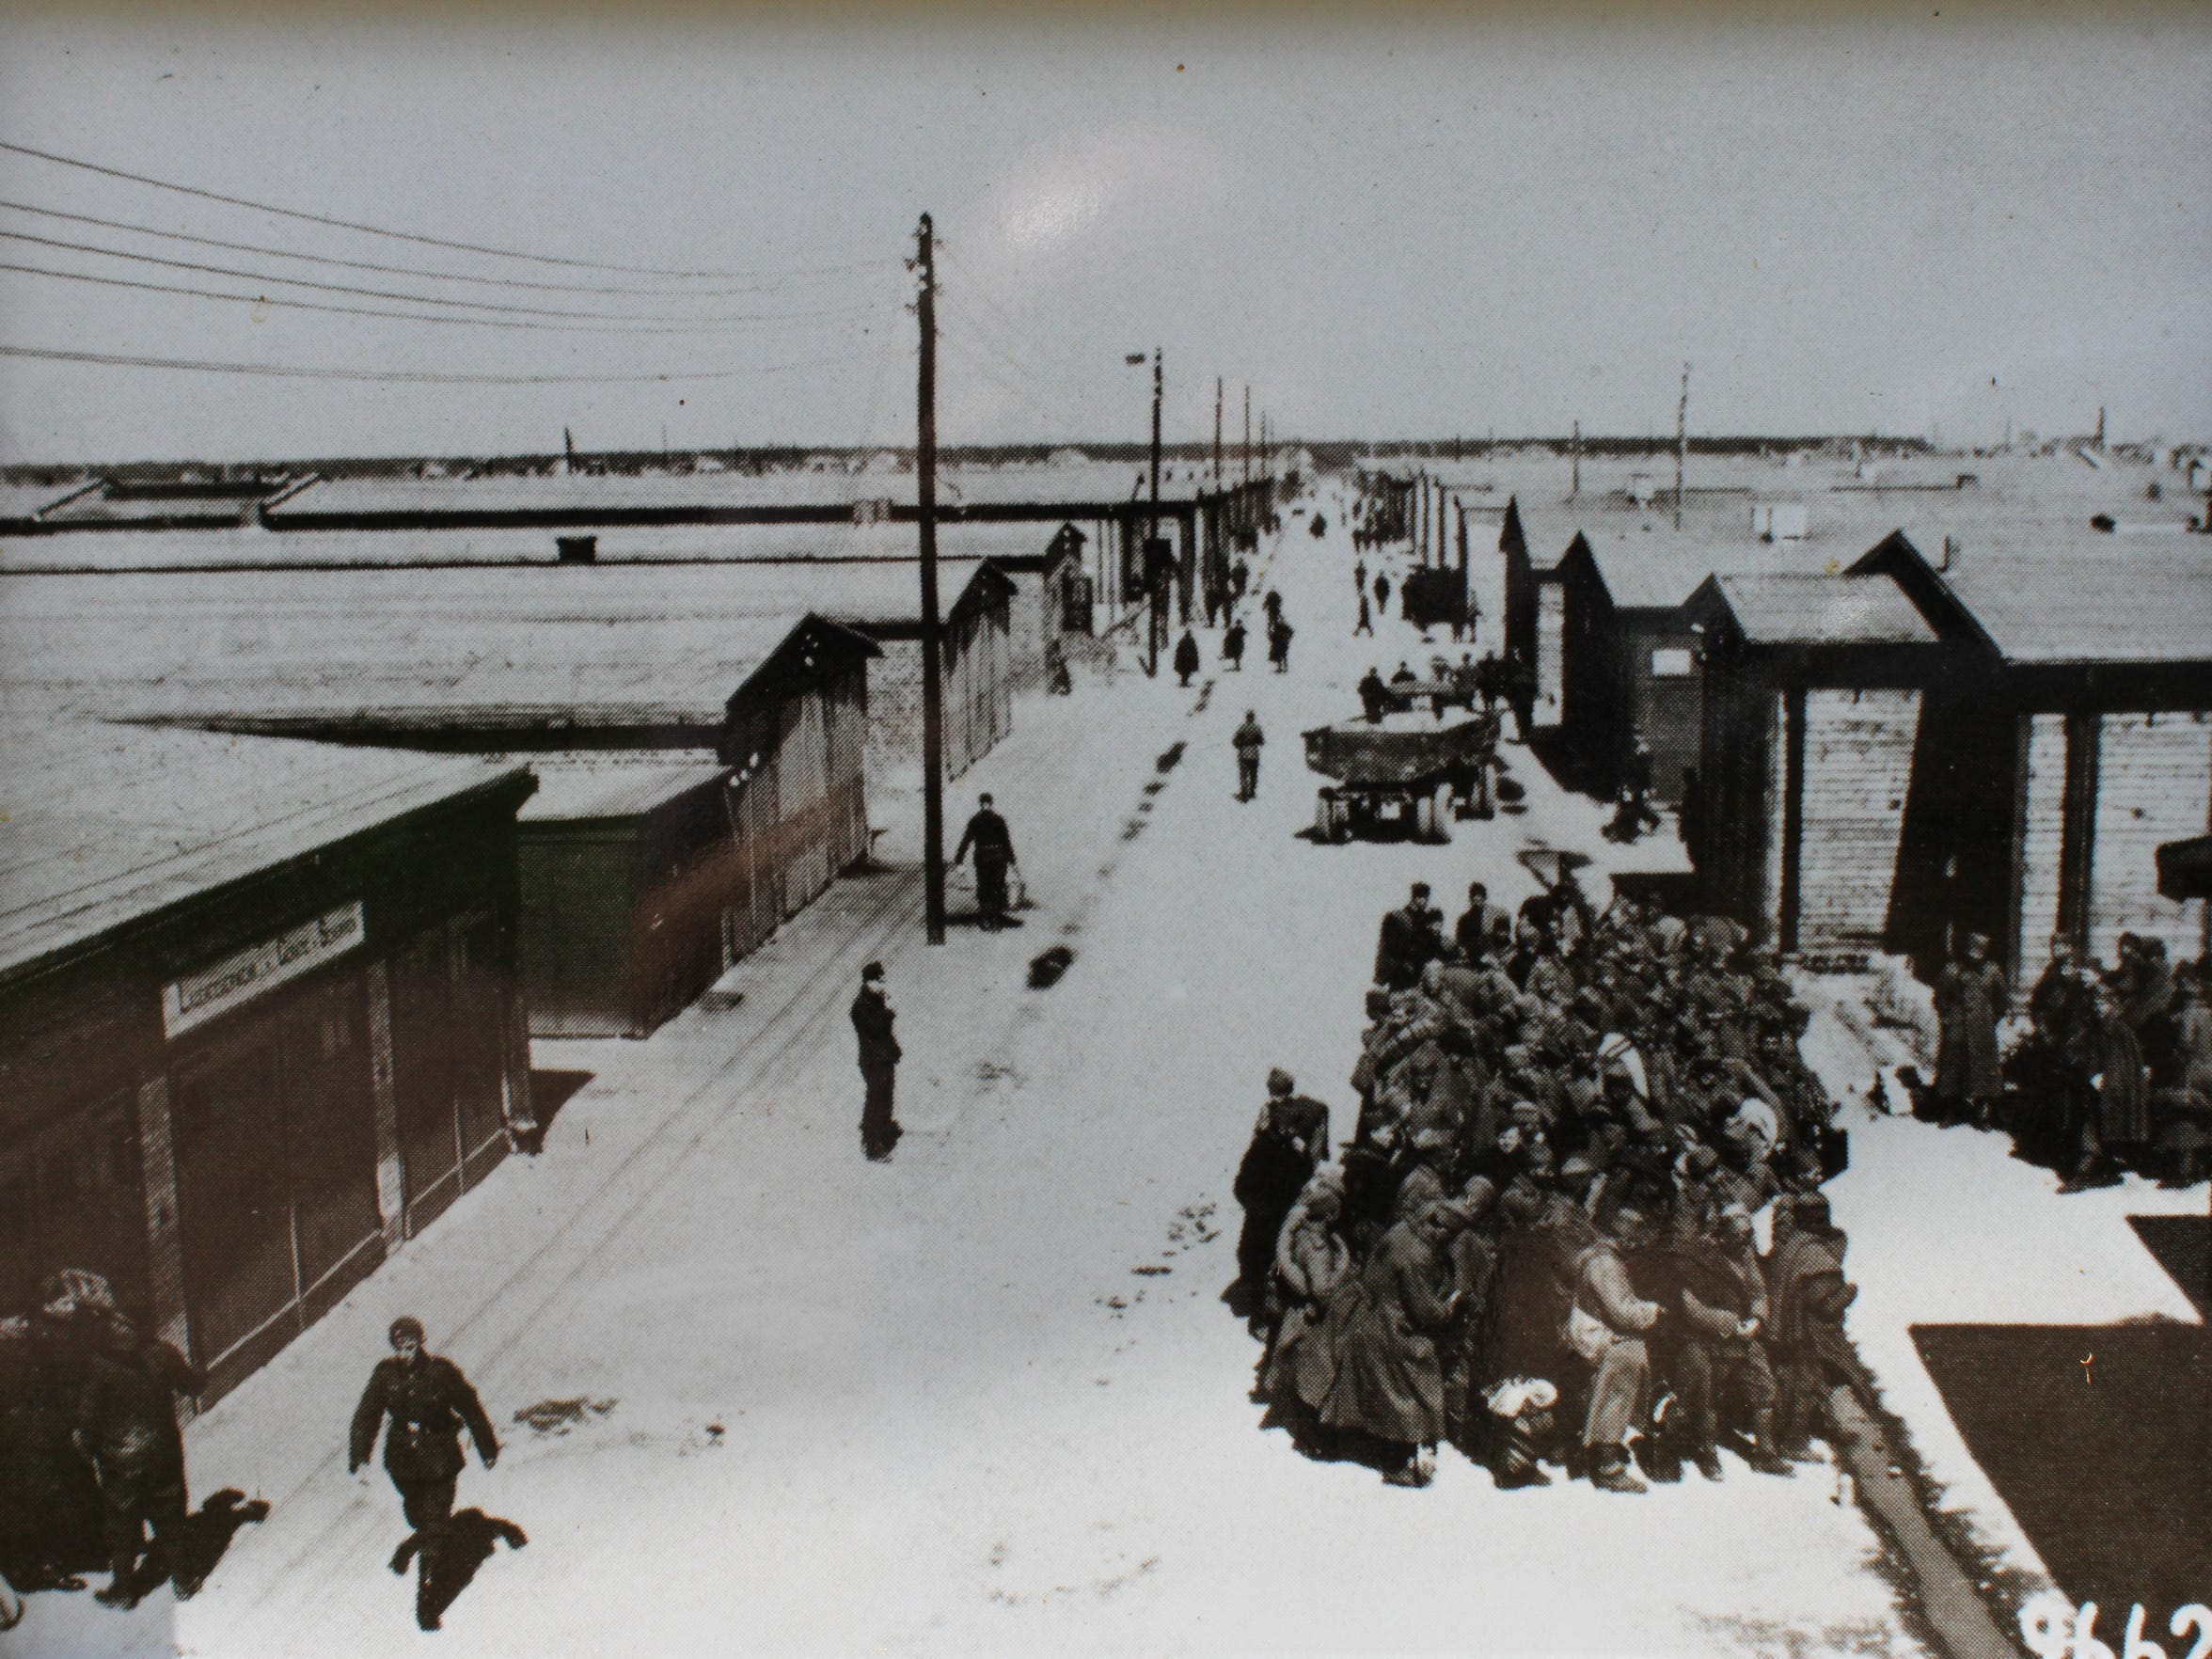 The mainstreet of Stalag IV-B, where Keith Ginther of Choteau was a prisioner of war during World War II. Rations were lean and barracks overcrowded. Jewish Americans disappeared from the POW camps into Nazi extermination camps.